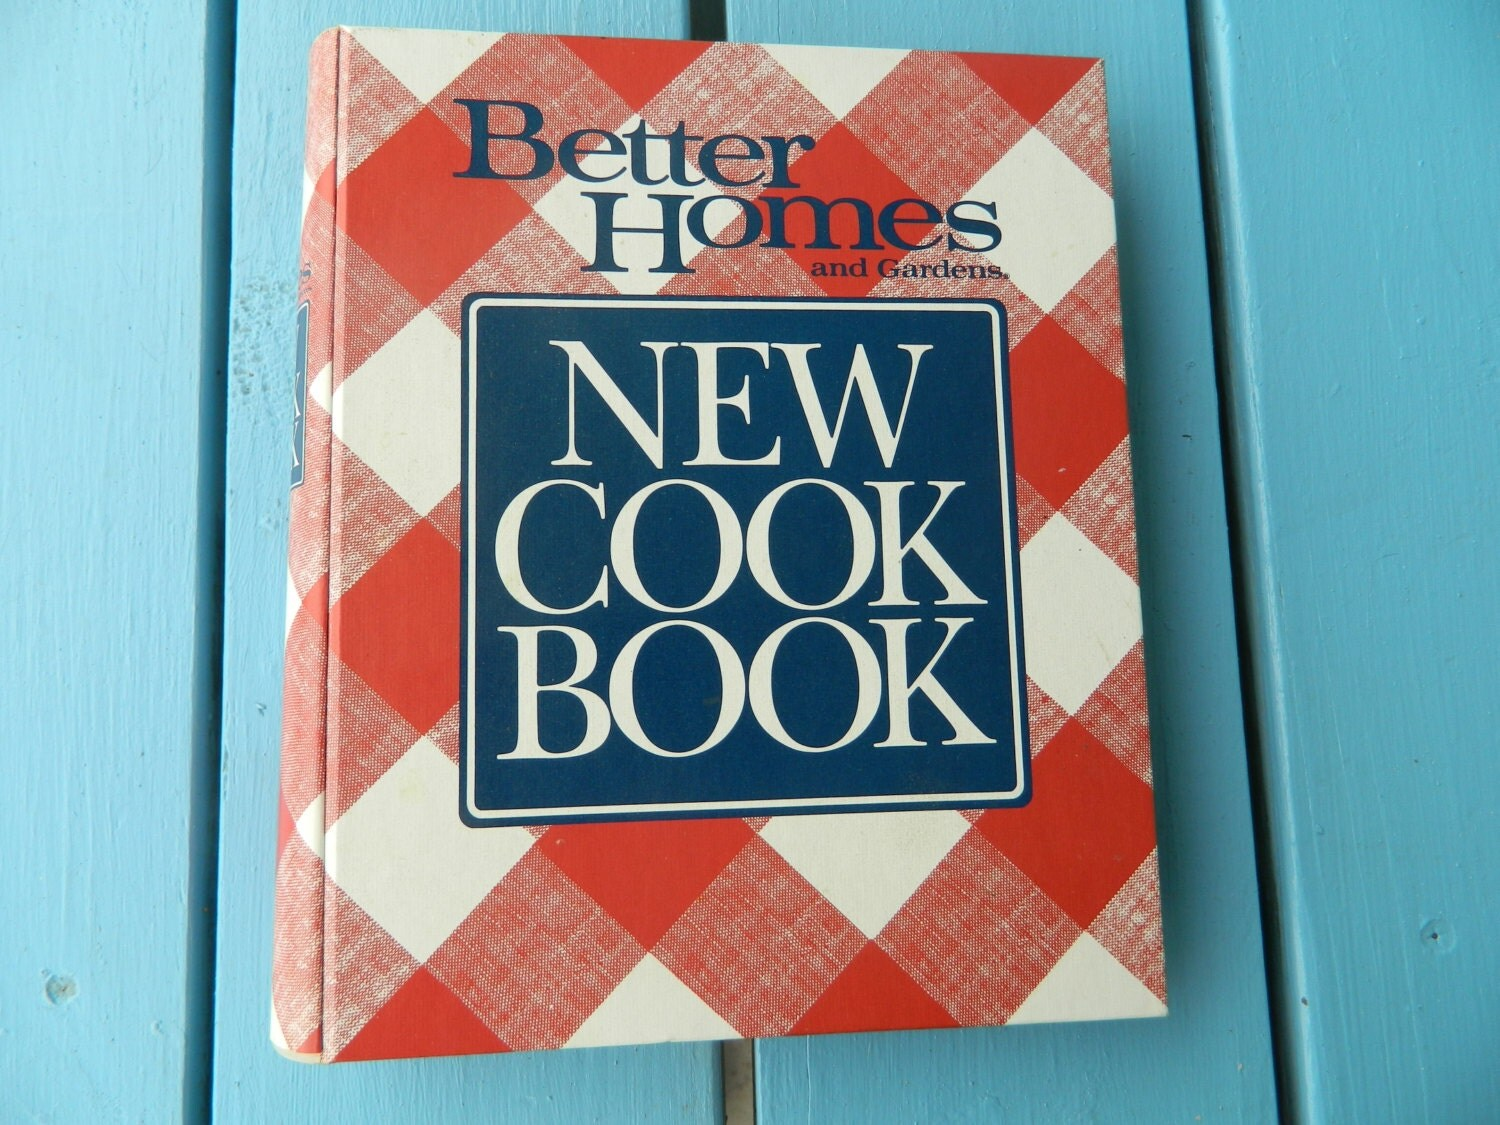 7 Popular Siding Materials To Consider: 1989 Better Homes And Gardens New Cook Book Excellent Vintage